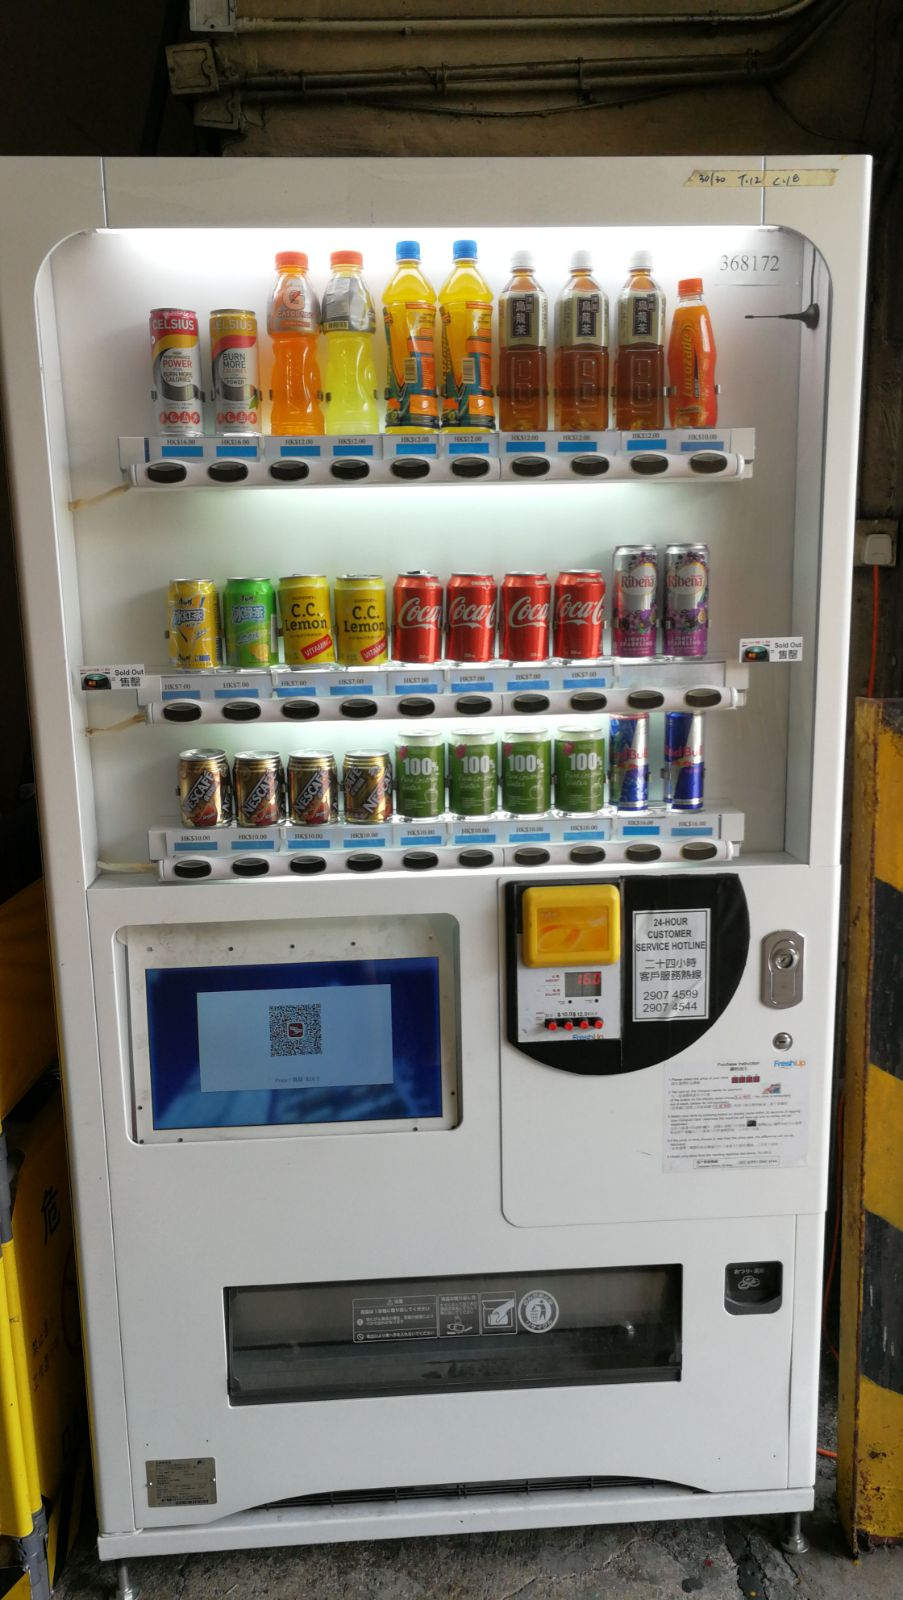 Freshup, vending machine hk, food, beverage, smart retail, convenient, vending services, savils guadian, housing estates